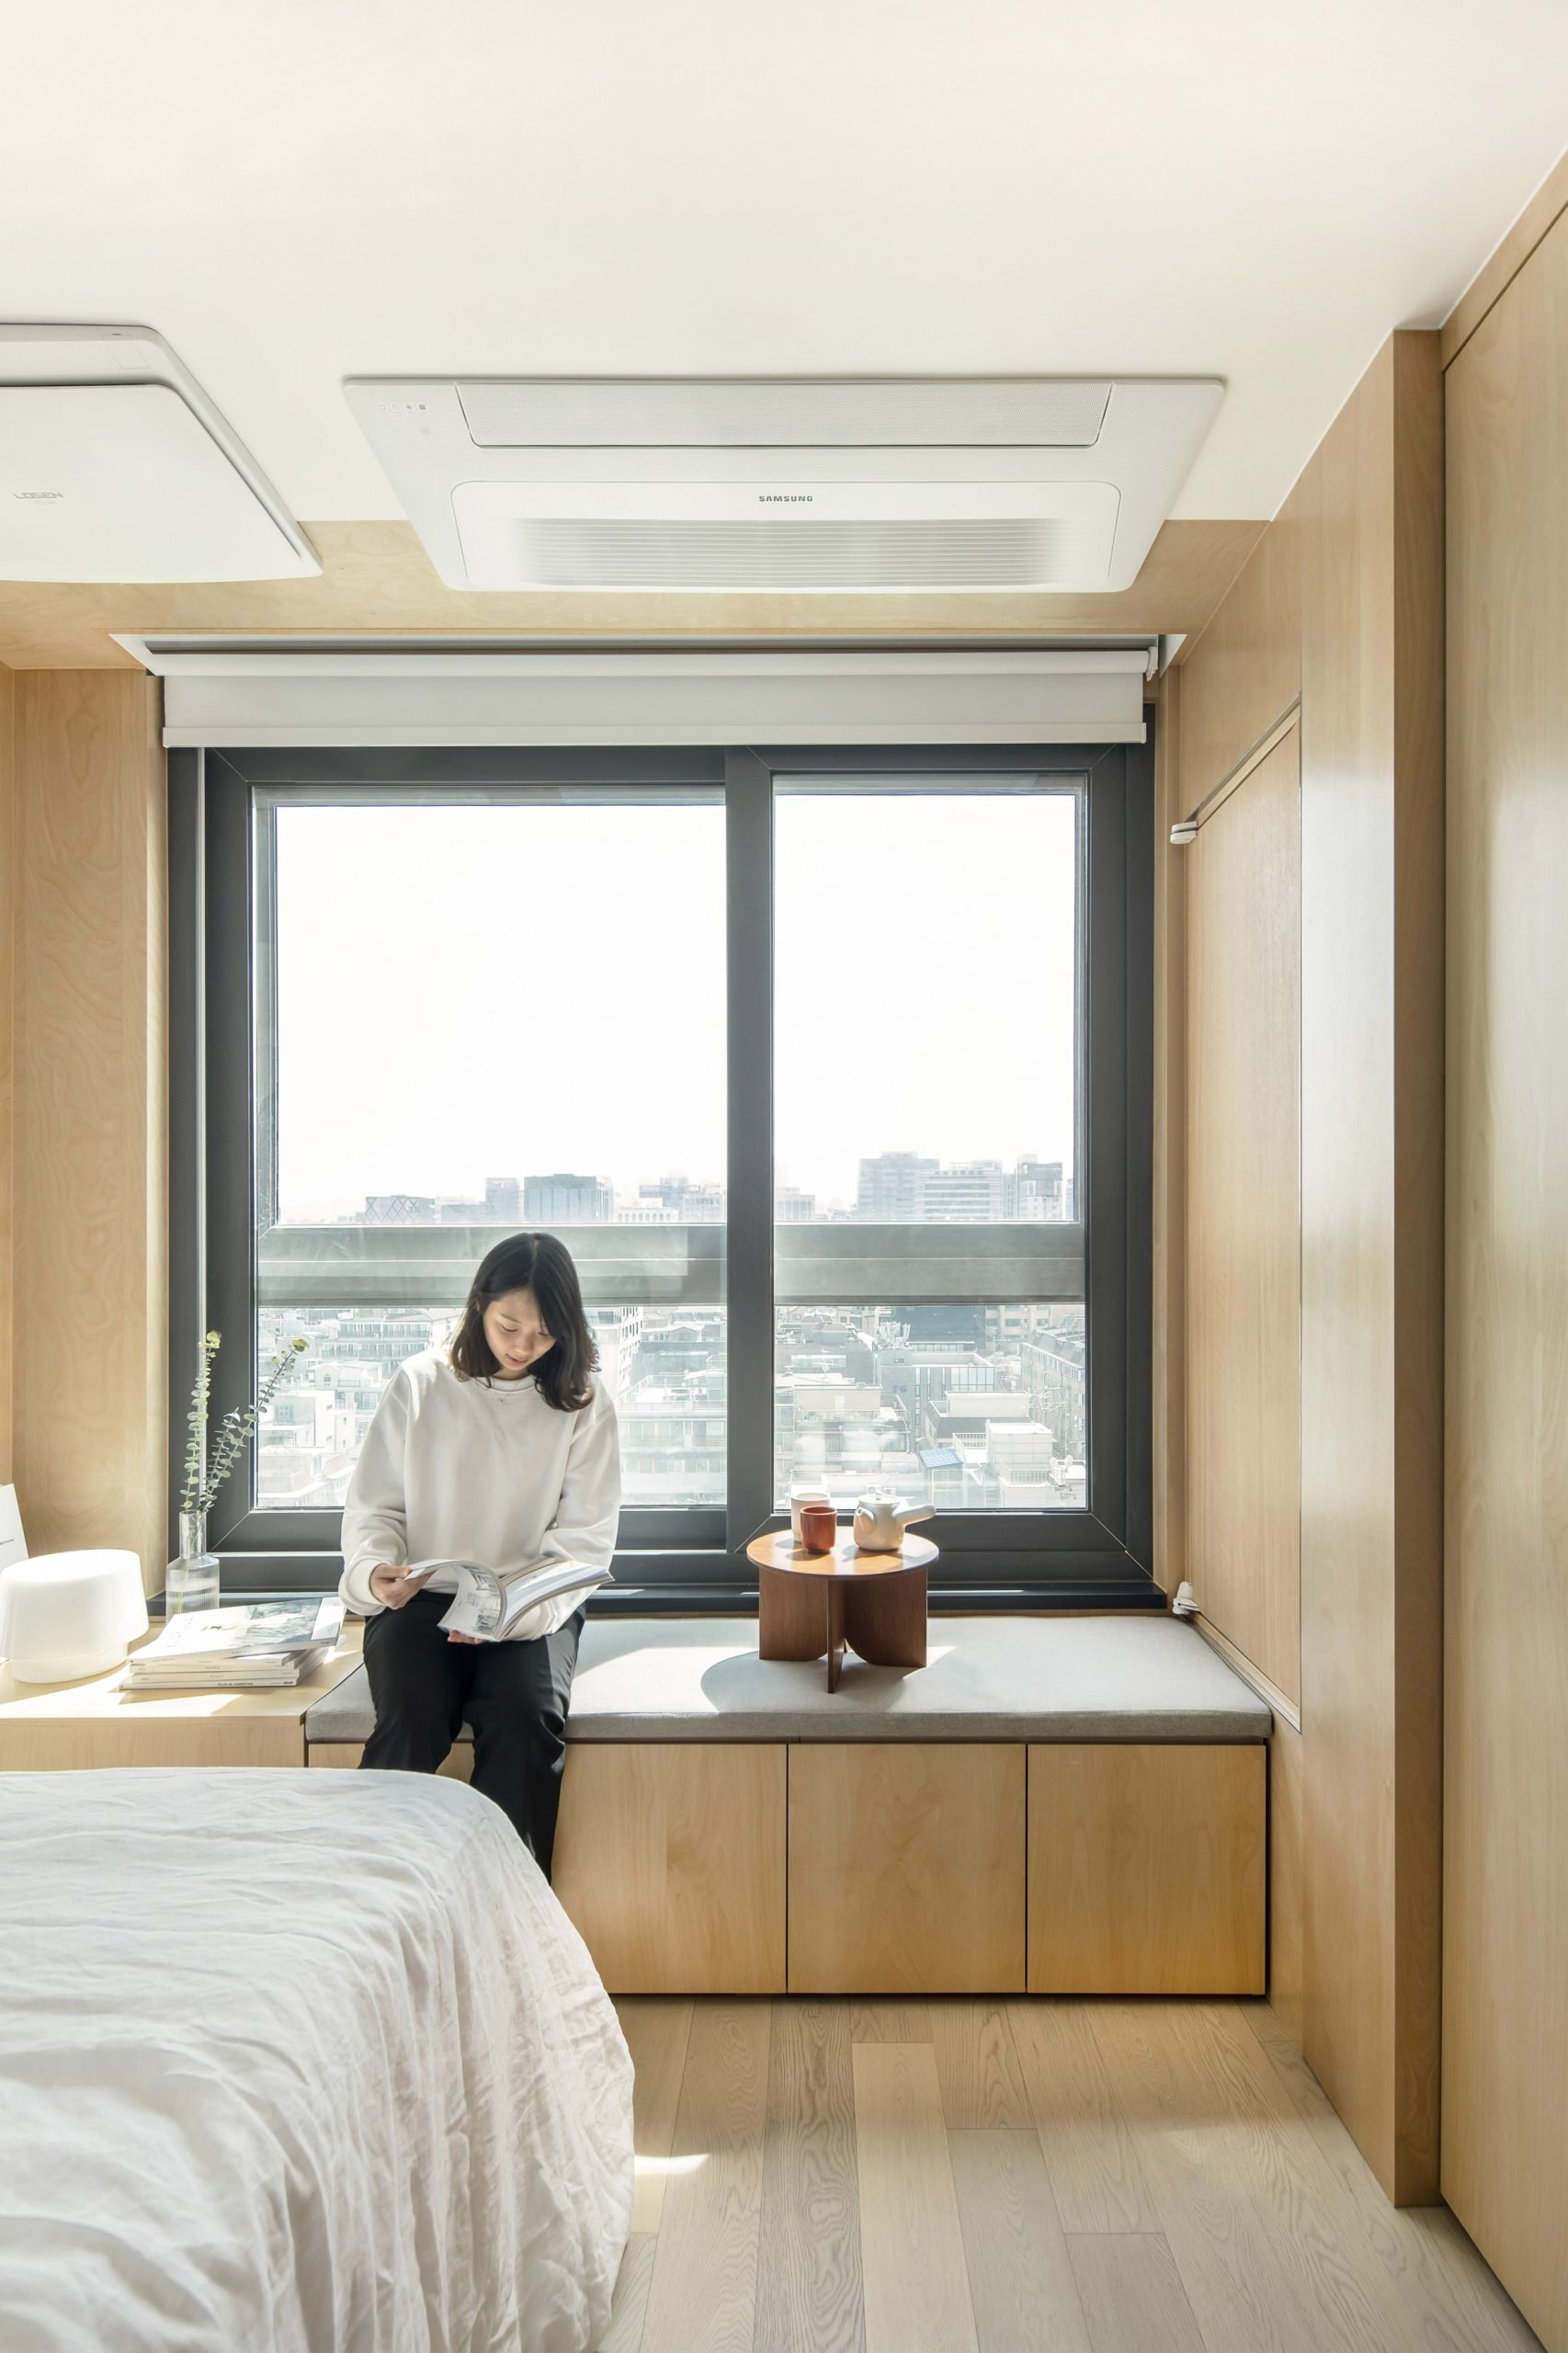 A window seat inside a LIFE micro-apartment by Ian Lee